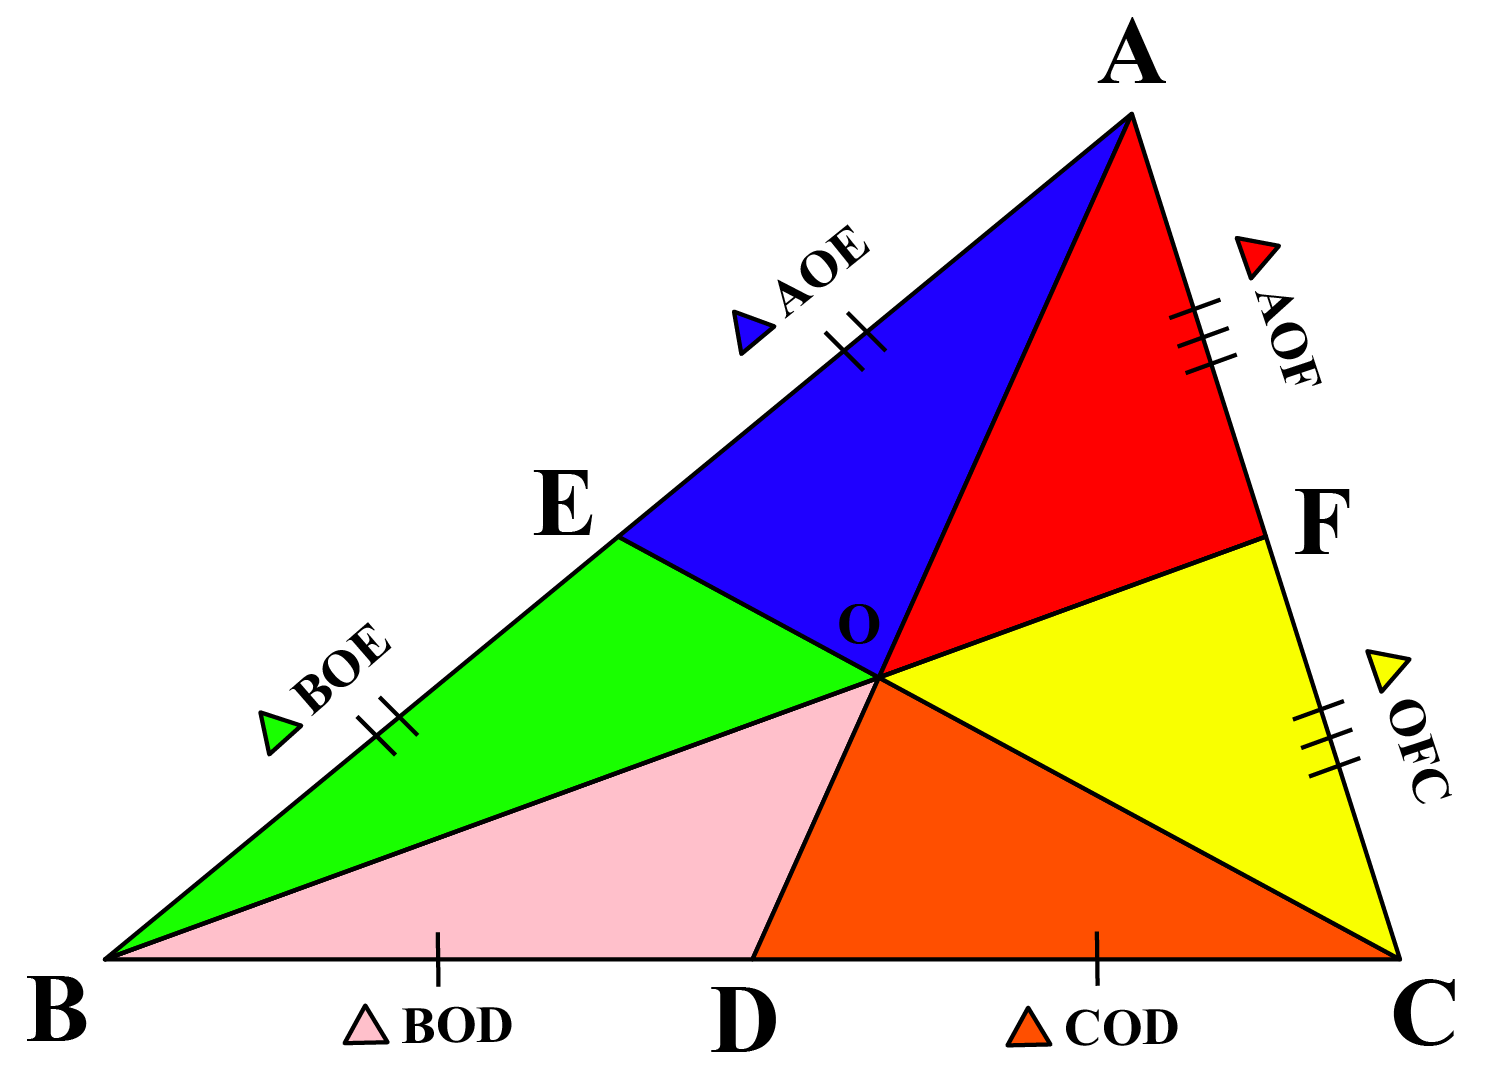 Triangle with three medians